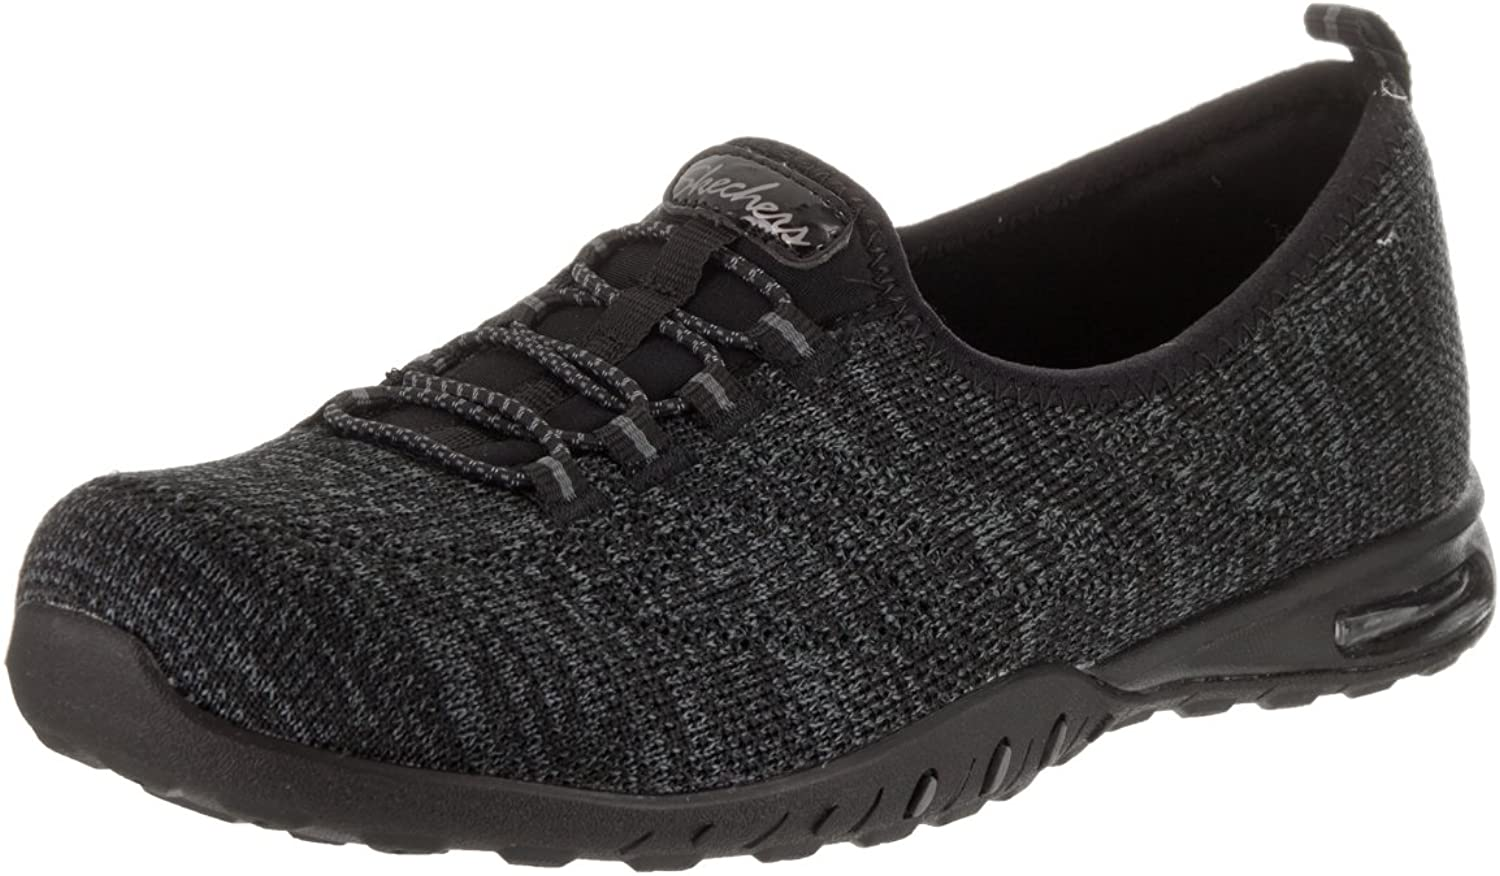 Skechers Women's Relaxed Fit Easy Air in My Dreams Slip-On